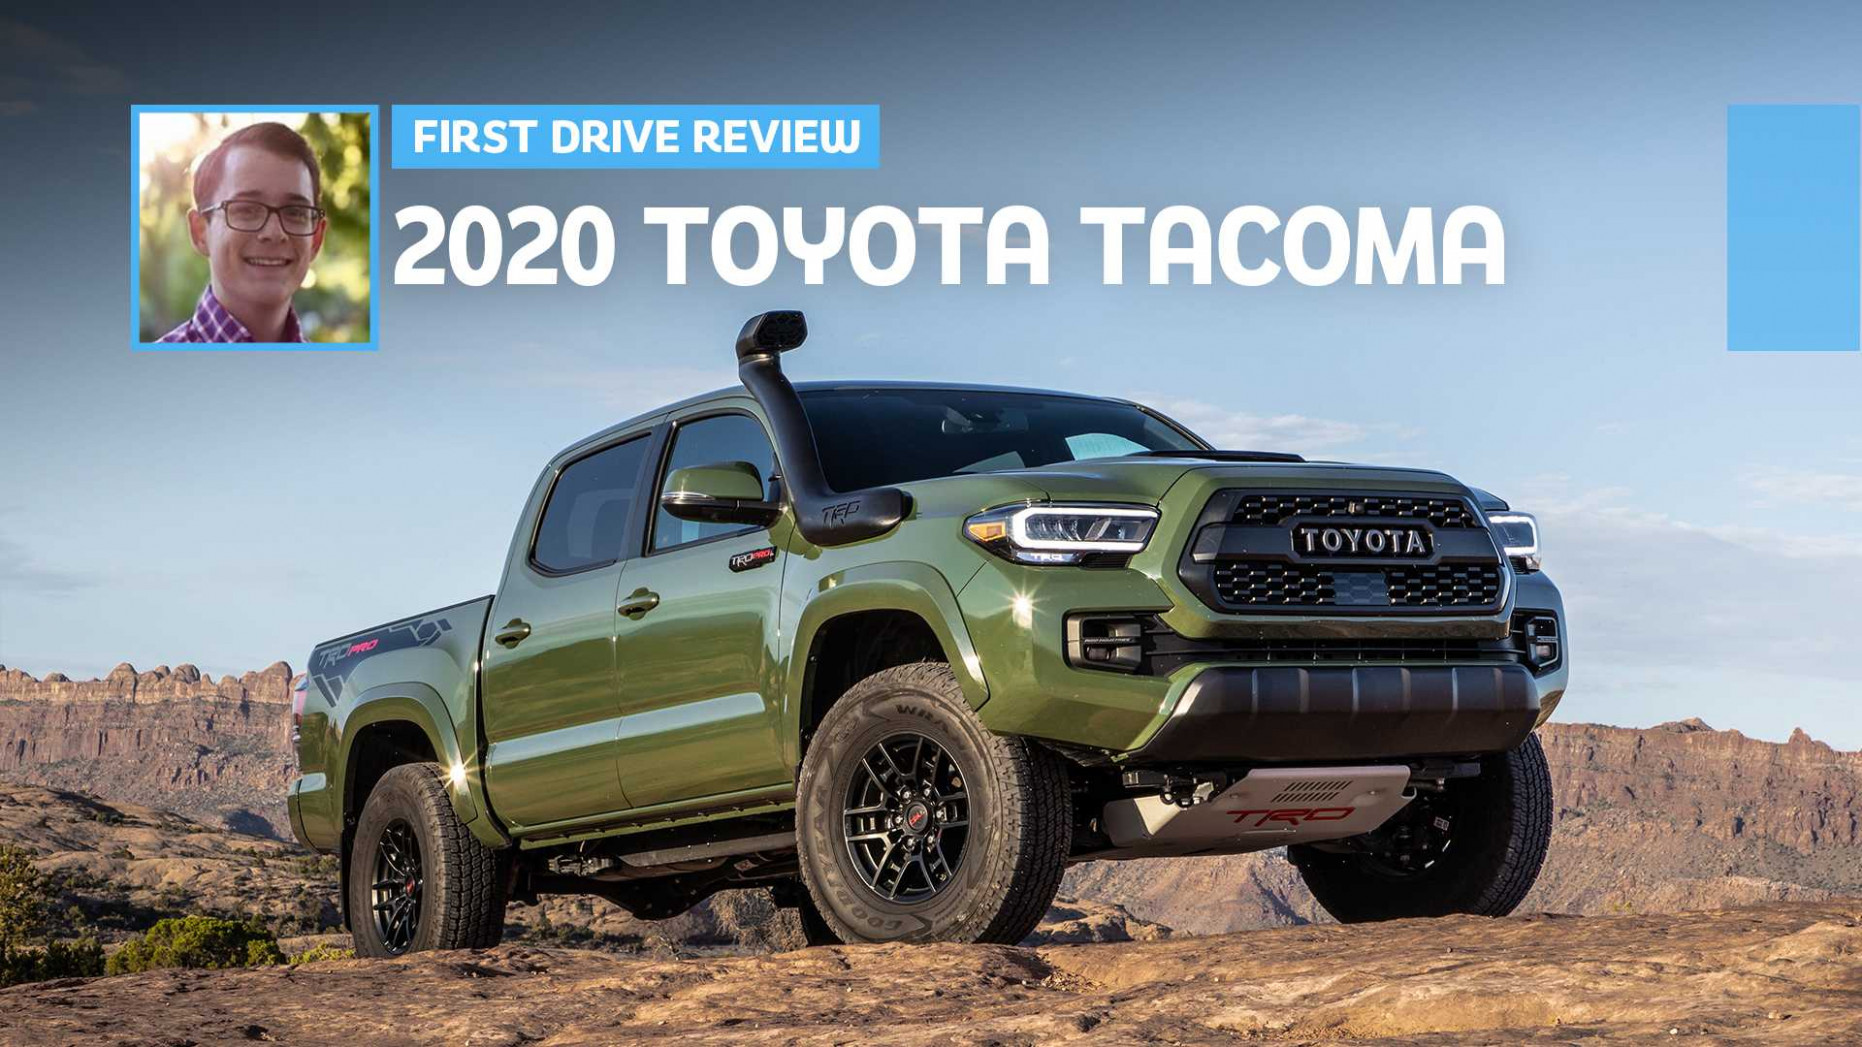 9 Toyota Tacoma First Drive: Taco Tuesday - toyota tacoma 2020 review